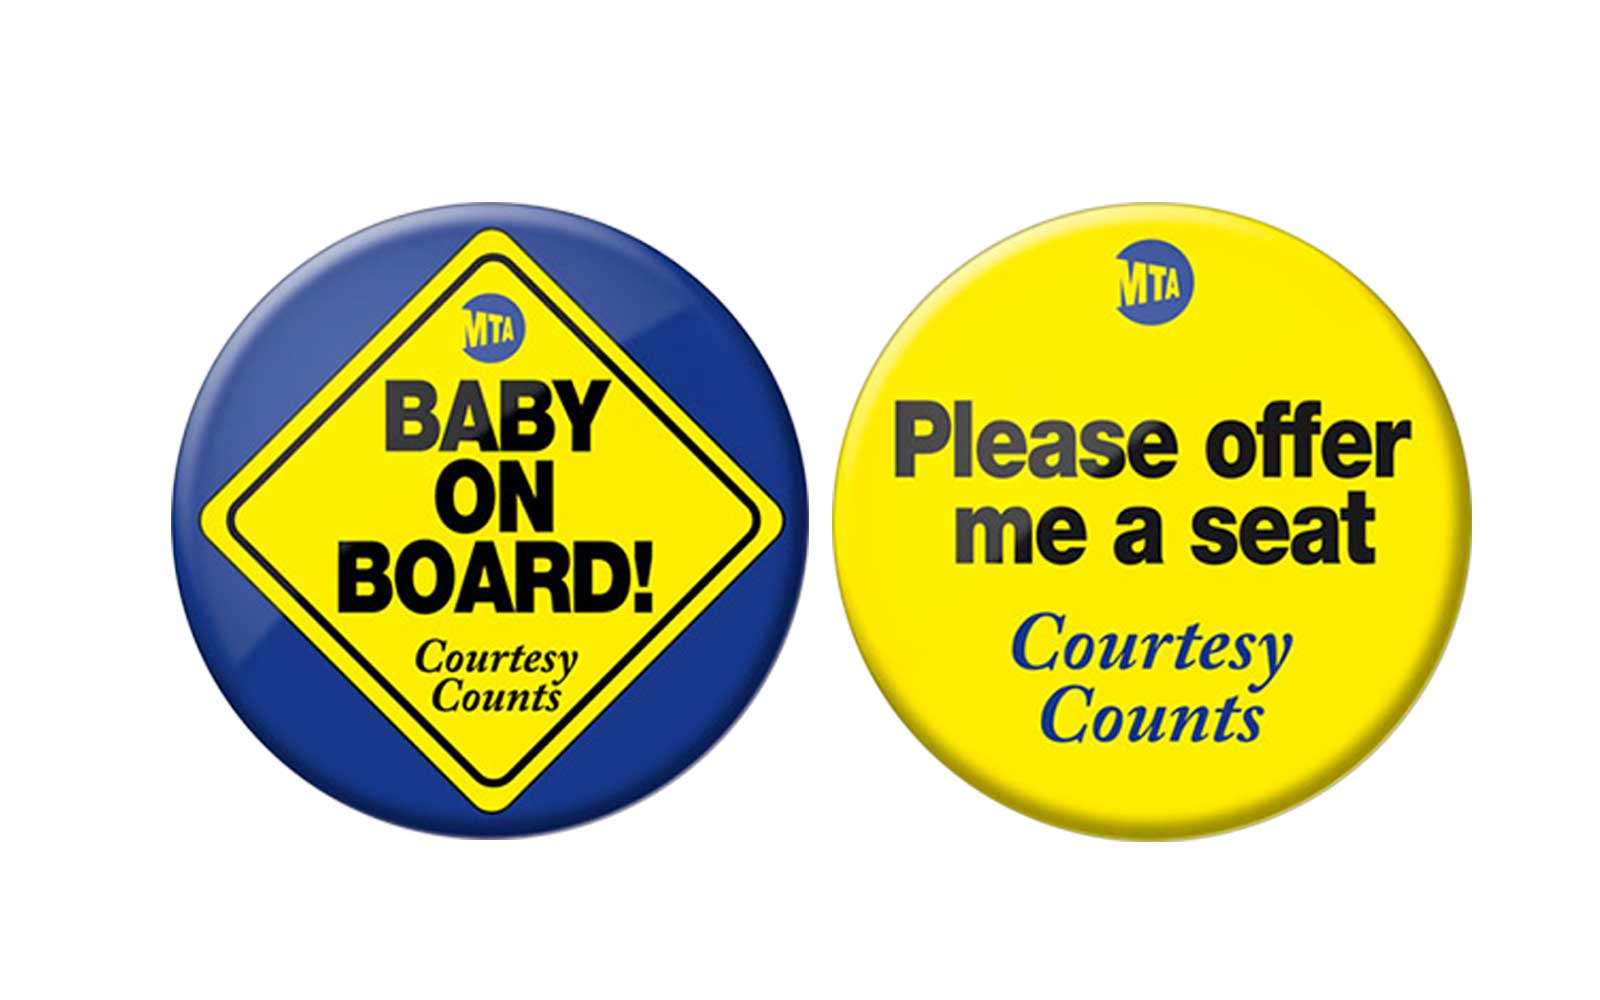 MTA NYC Subway Buttons